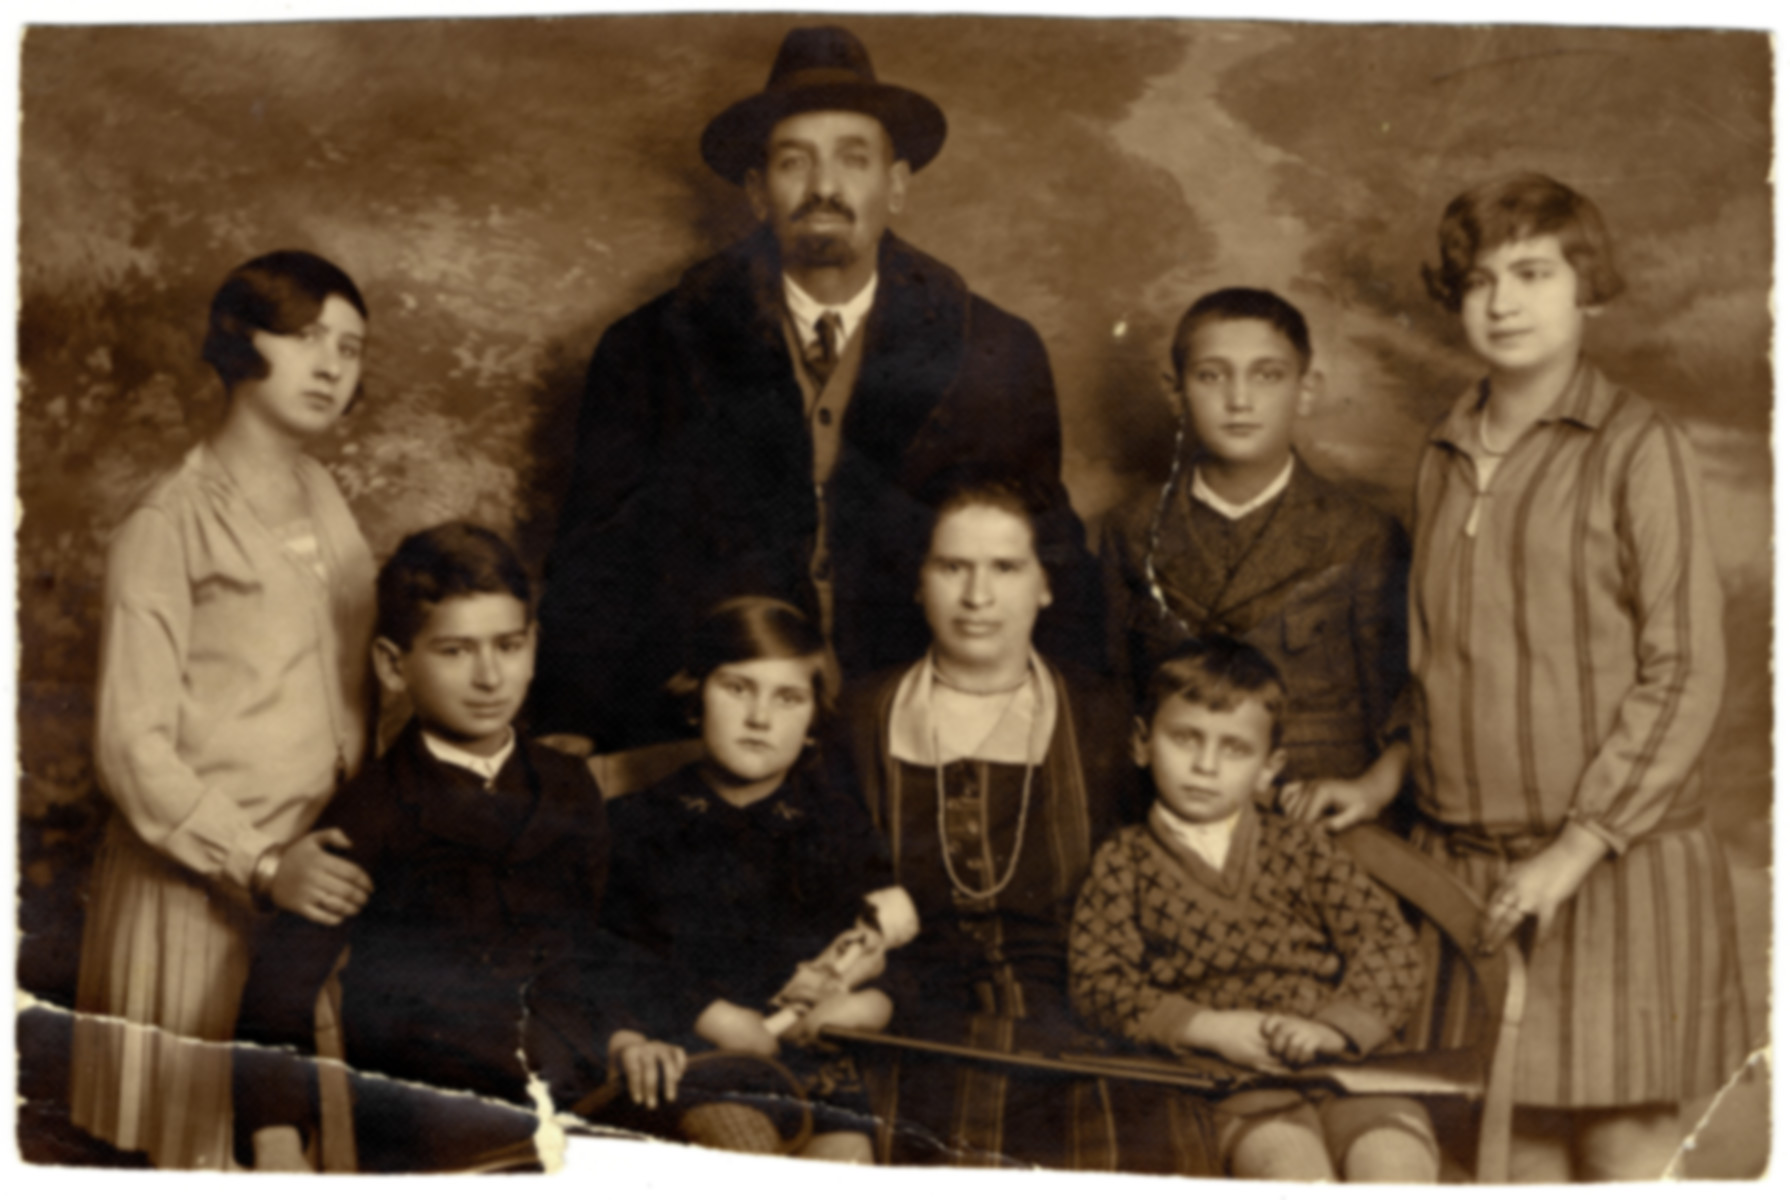 Prewar portrait of the Kleinberger family in Budapest.  Pictured in the center is Maria Kleinberger (the donor's great aunt).  Also seated are Tibor (who became a chess master and perished in the Holocaust), Edit (who emigrated) and Kishegyi Arpad (who survived and became an opera singer).  Standing are Kato (who survivied concentration camp), the father (name unknown), Laszlo (who perished in the Holocaust) and Zseni (who survived).